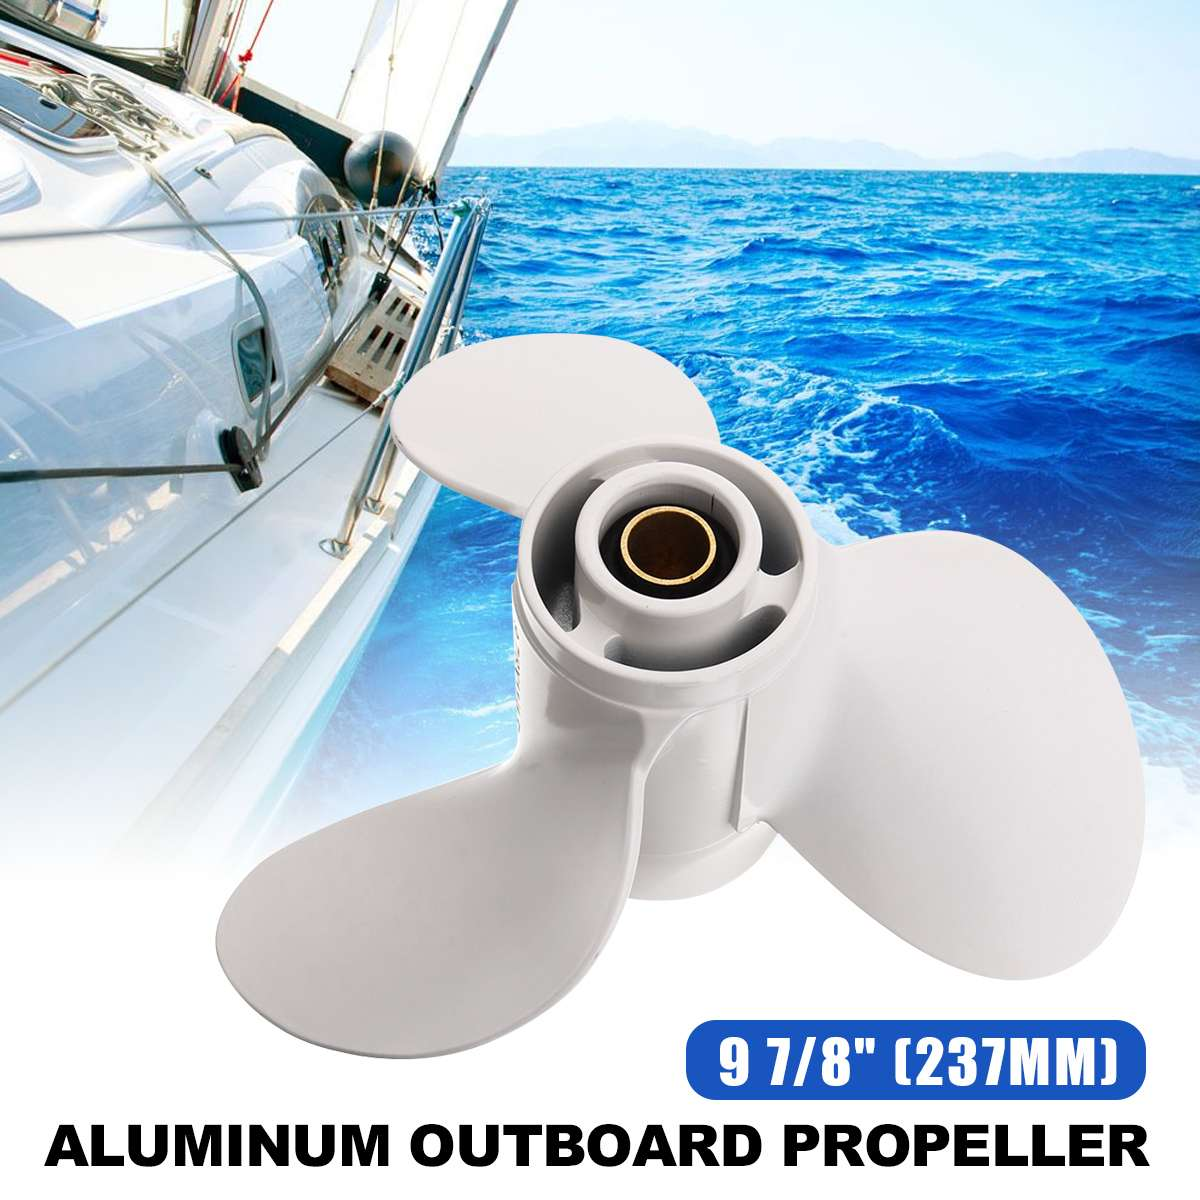 664-45947-01-EL 9 7/8 X 11 1/4 Aluminium Alloy Boat Outboard Propeller For Yamaha 20-30HP White 10 Spline Tooth 3 Blades